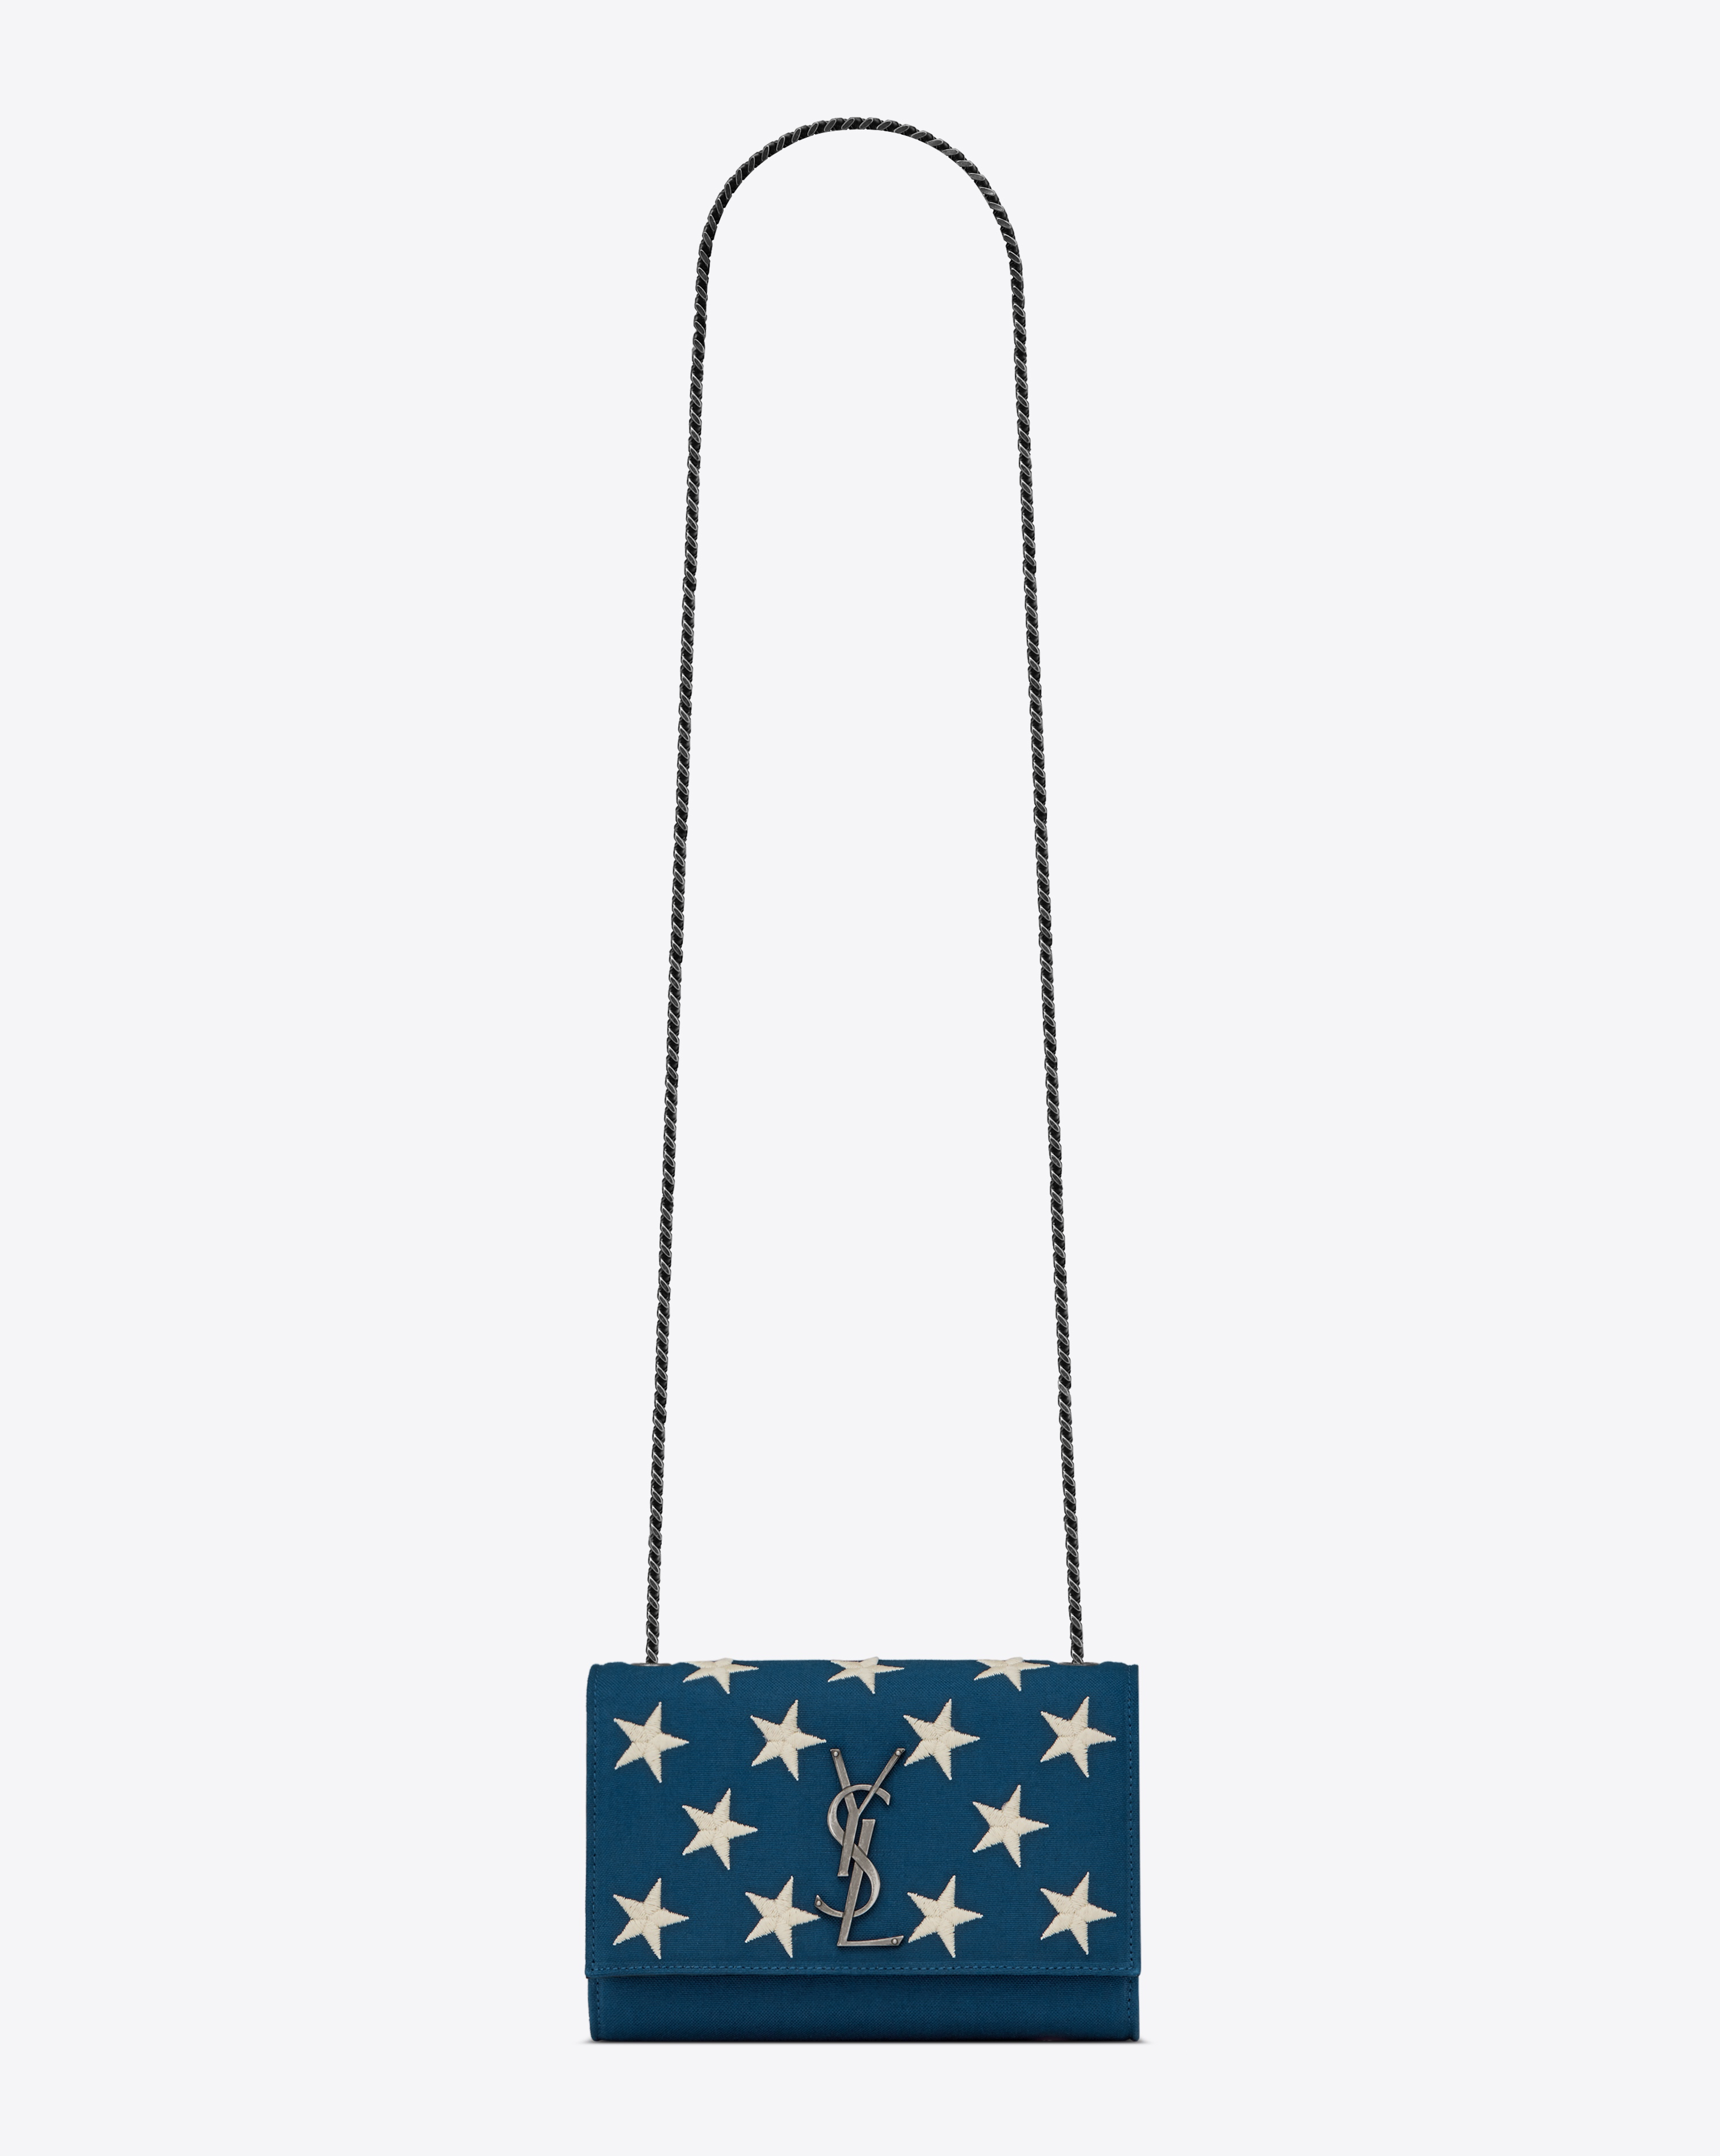 fcd8806aa53 Saint Laurent Announces The American Flag Collection | Fashion ...